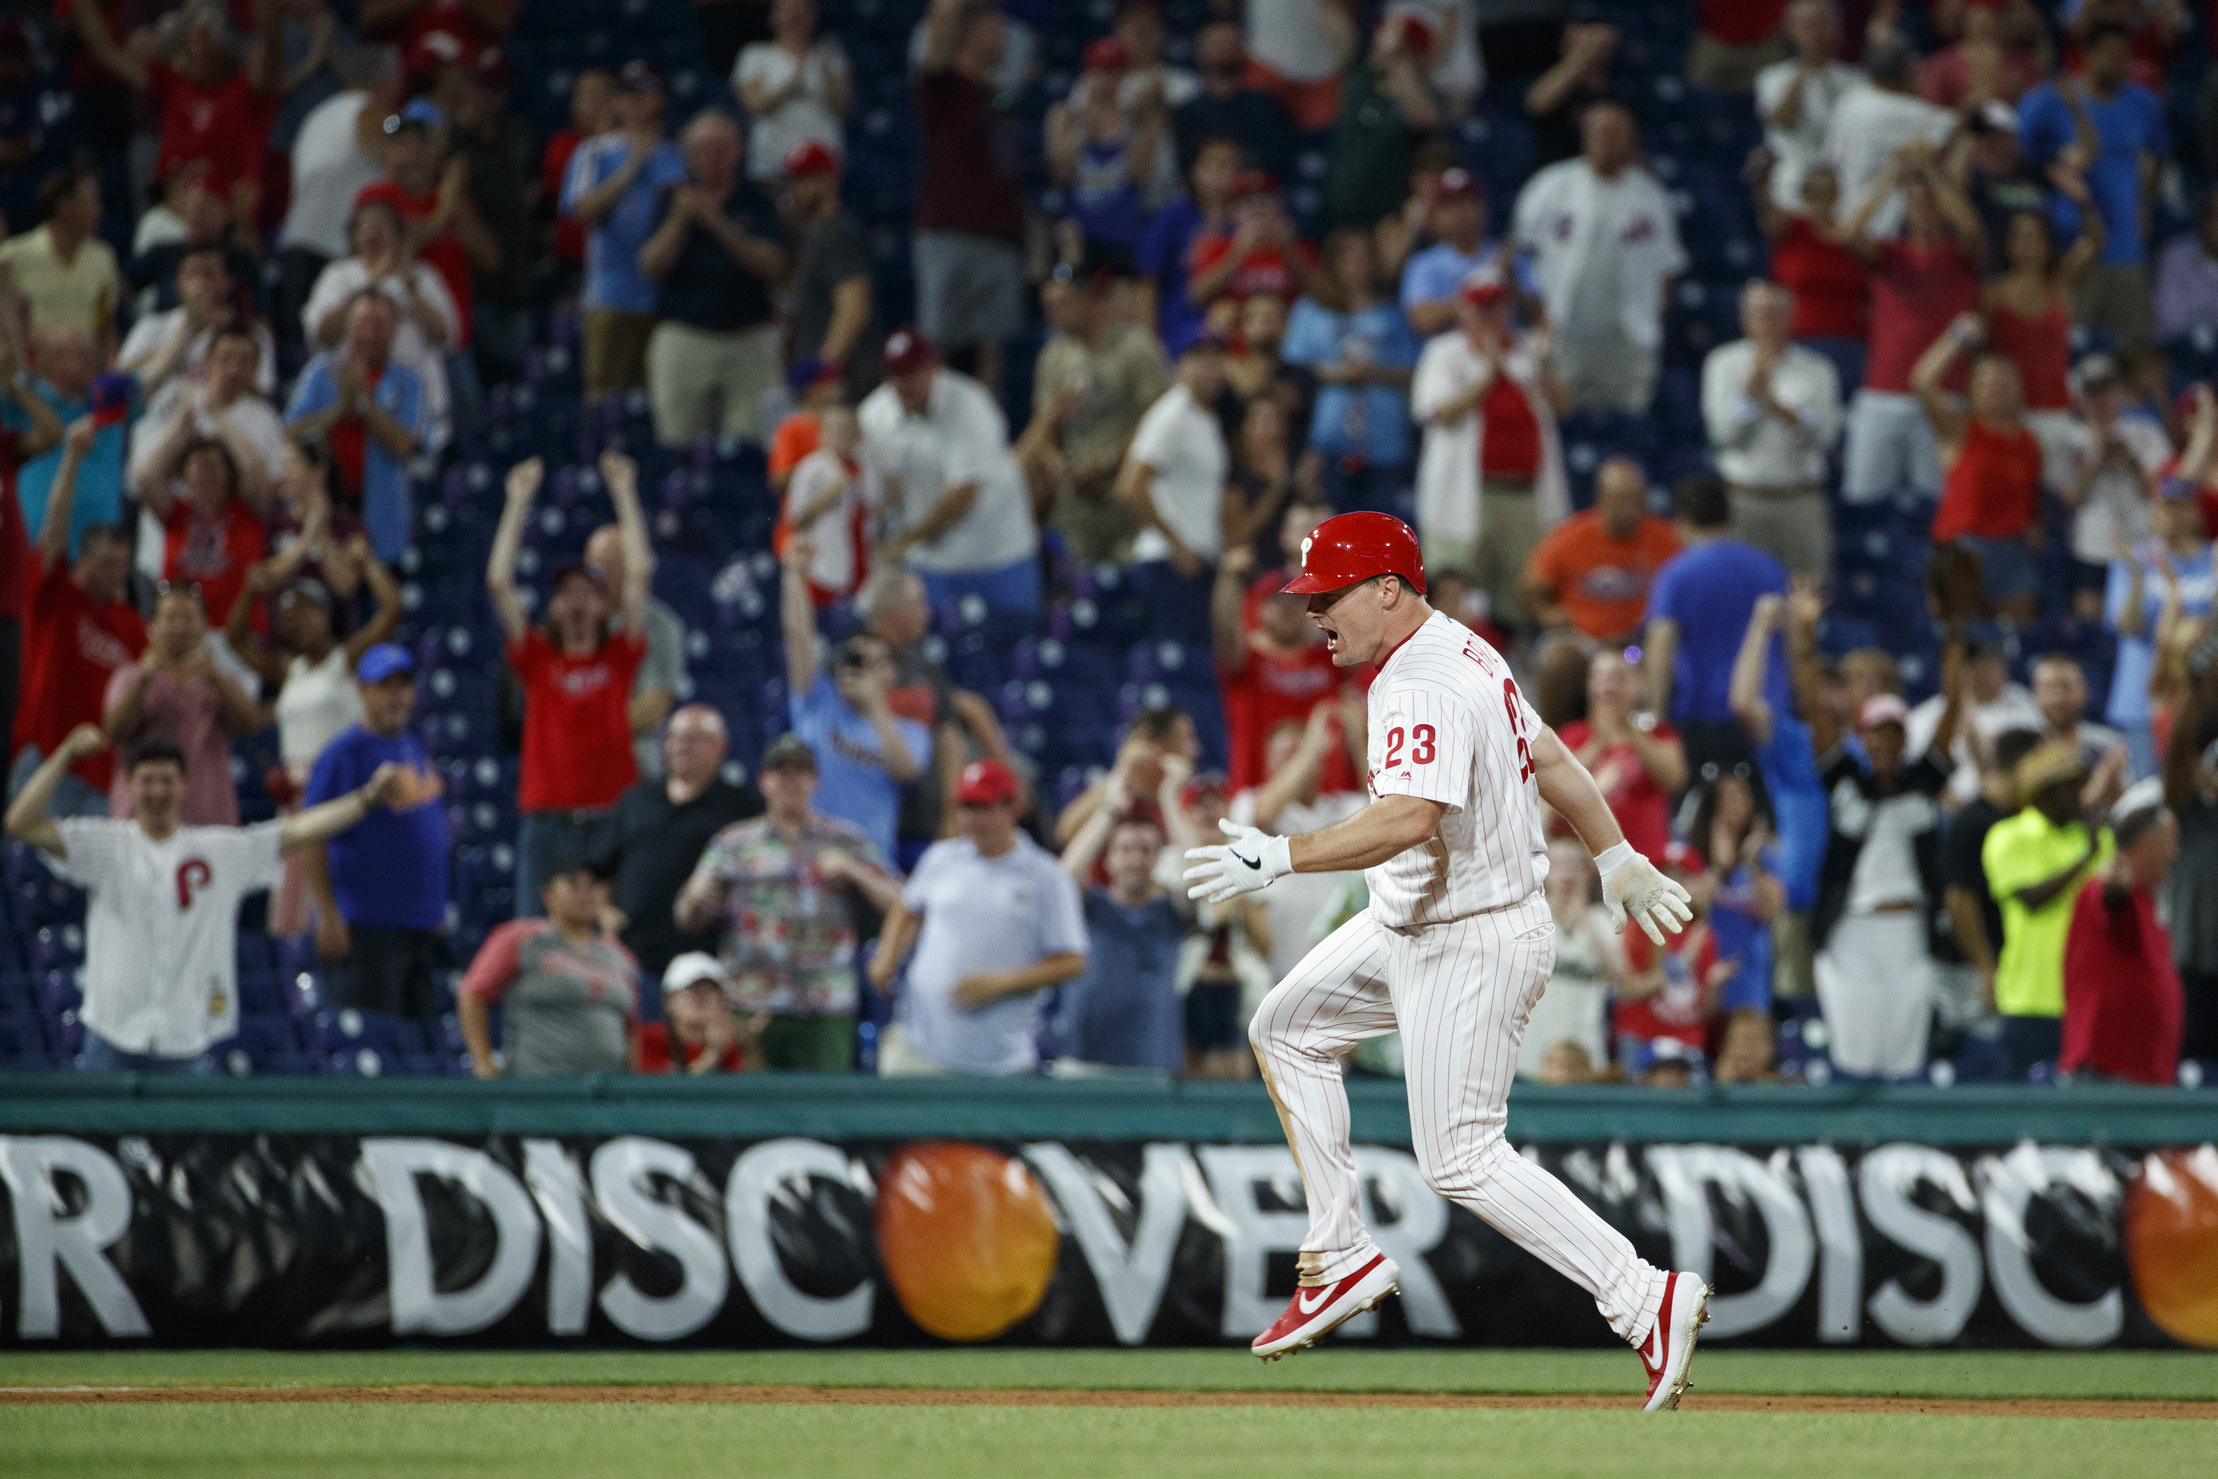 Bruce's double vs old team lifts Phils over Mets 5-4 in 10